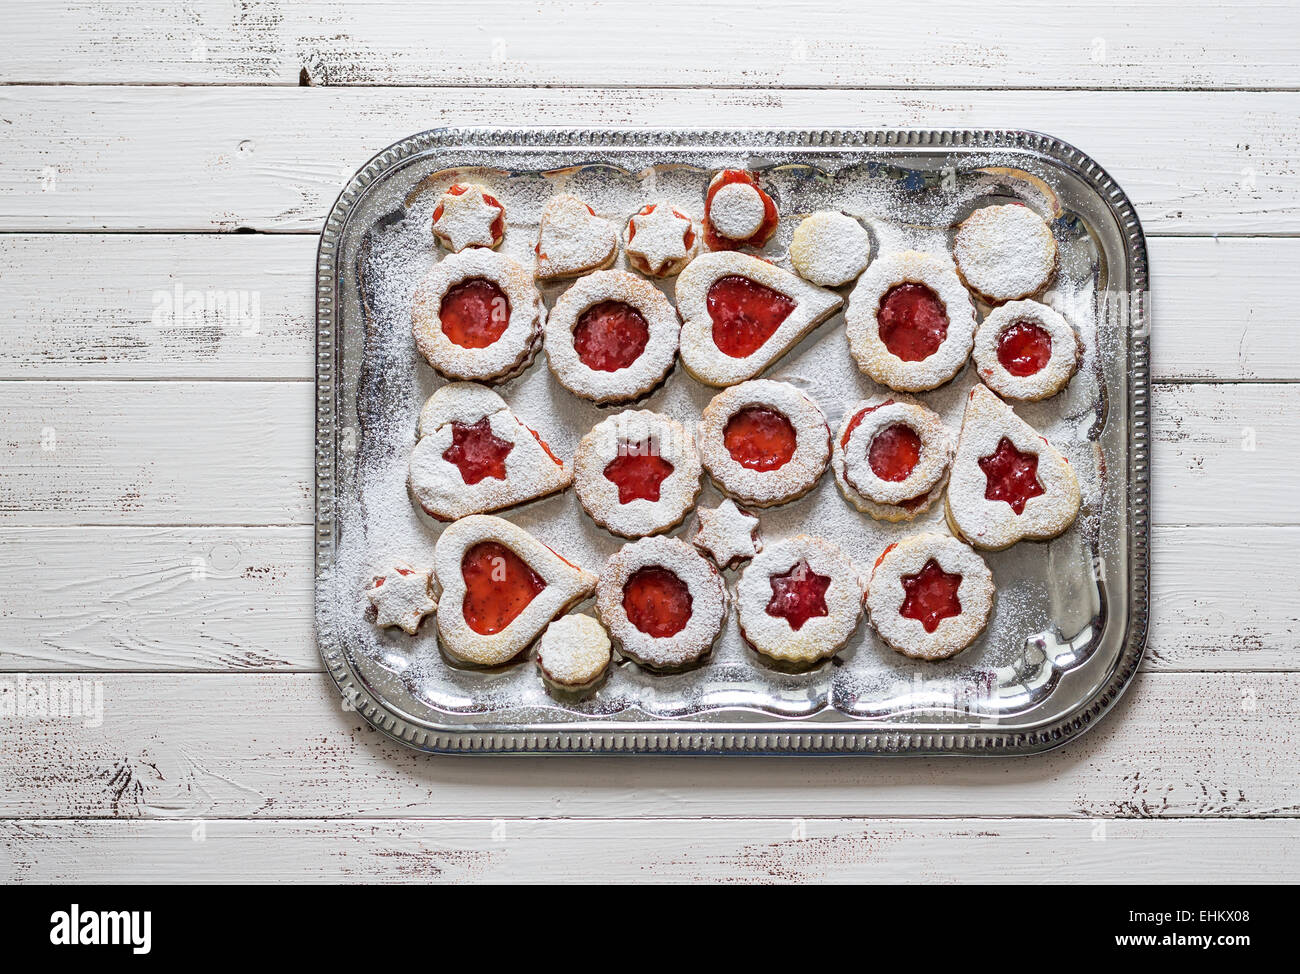 Christmas Cookies With Strawberry Jam On A Silver Platter Stock